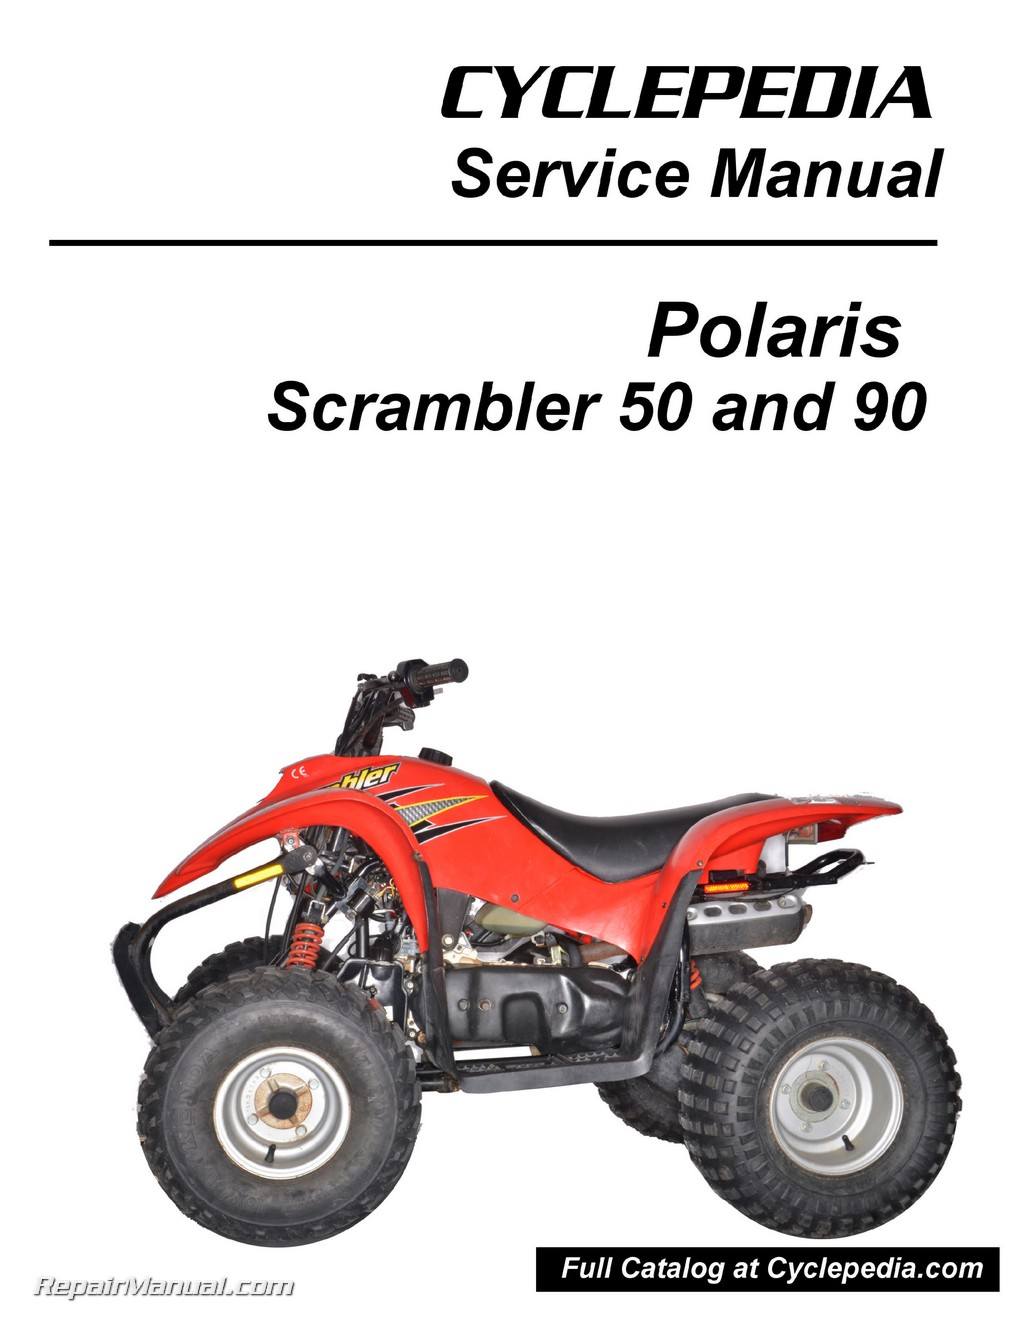 hight resolution of polaris 50cc 90cc scrambler atv print service manual by cyclepedia polaris wiring schematic 04 polaris scrambler 90cc wiring diagram